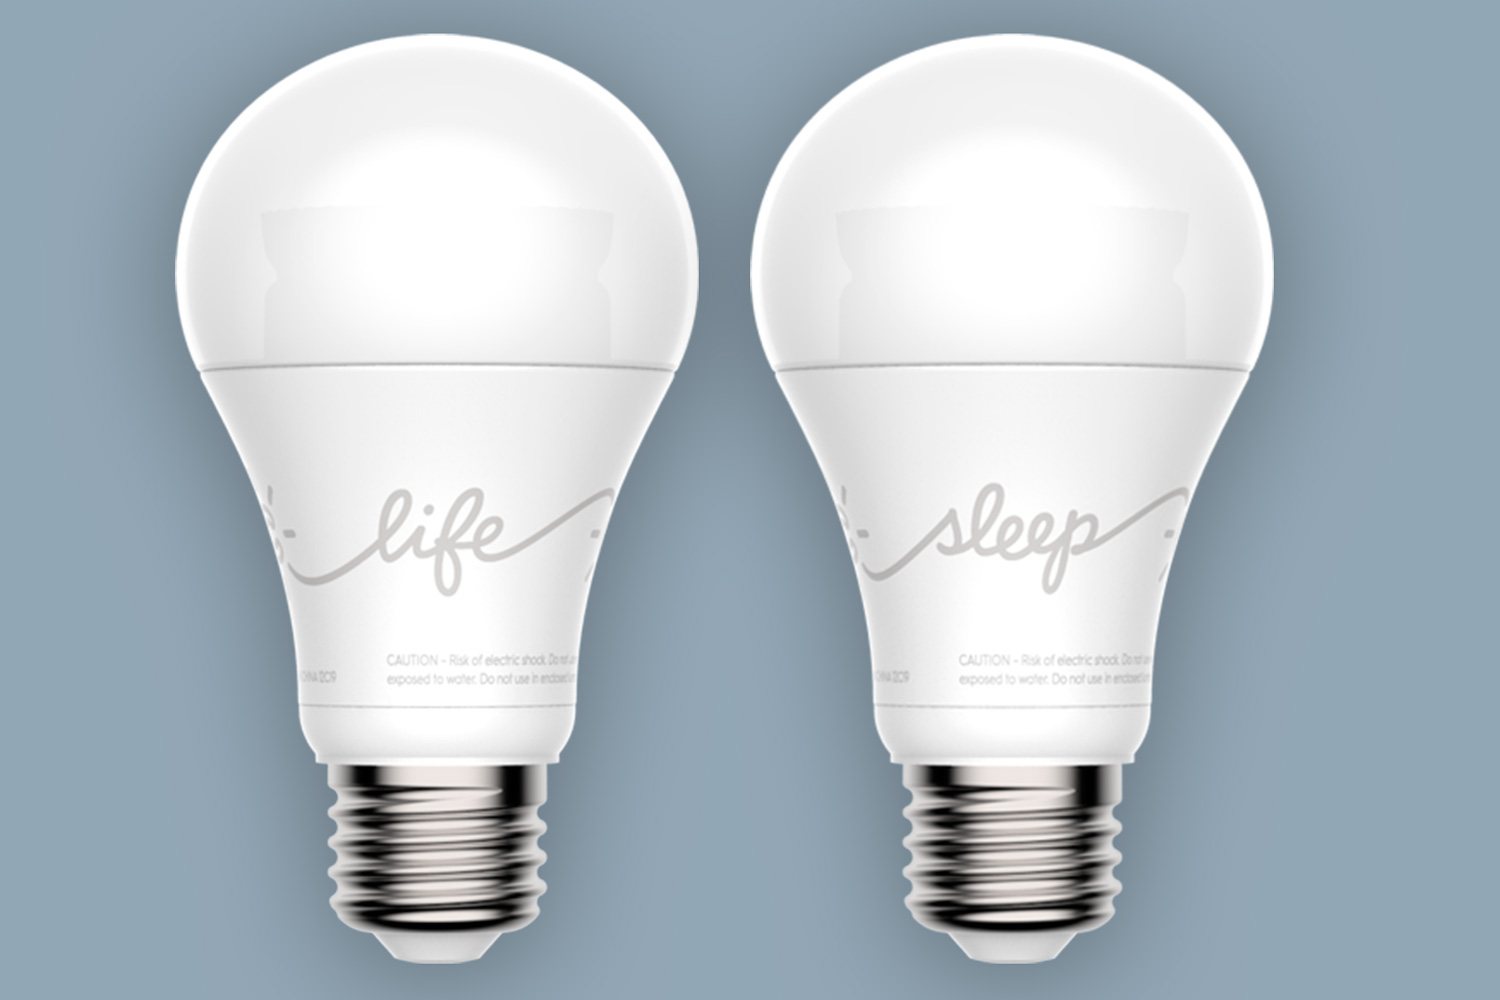 Need Better Sleep Ge 39 S New Smart Led Light Bulbs Adjust With Your Circadian Rhythm